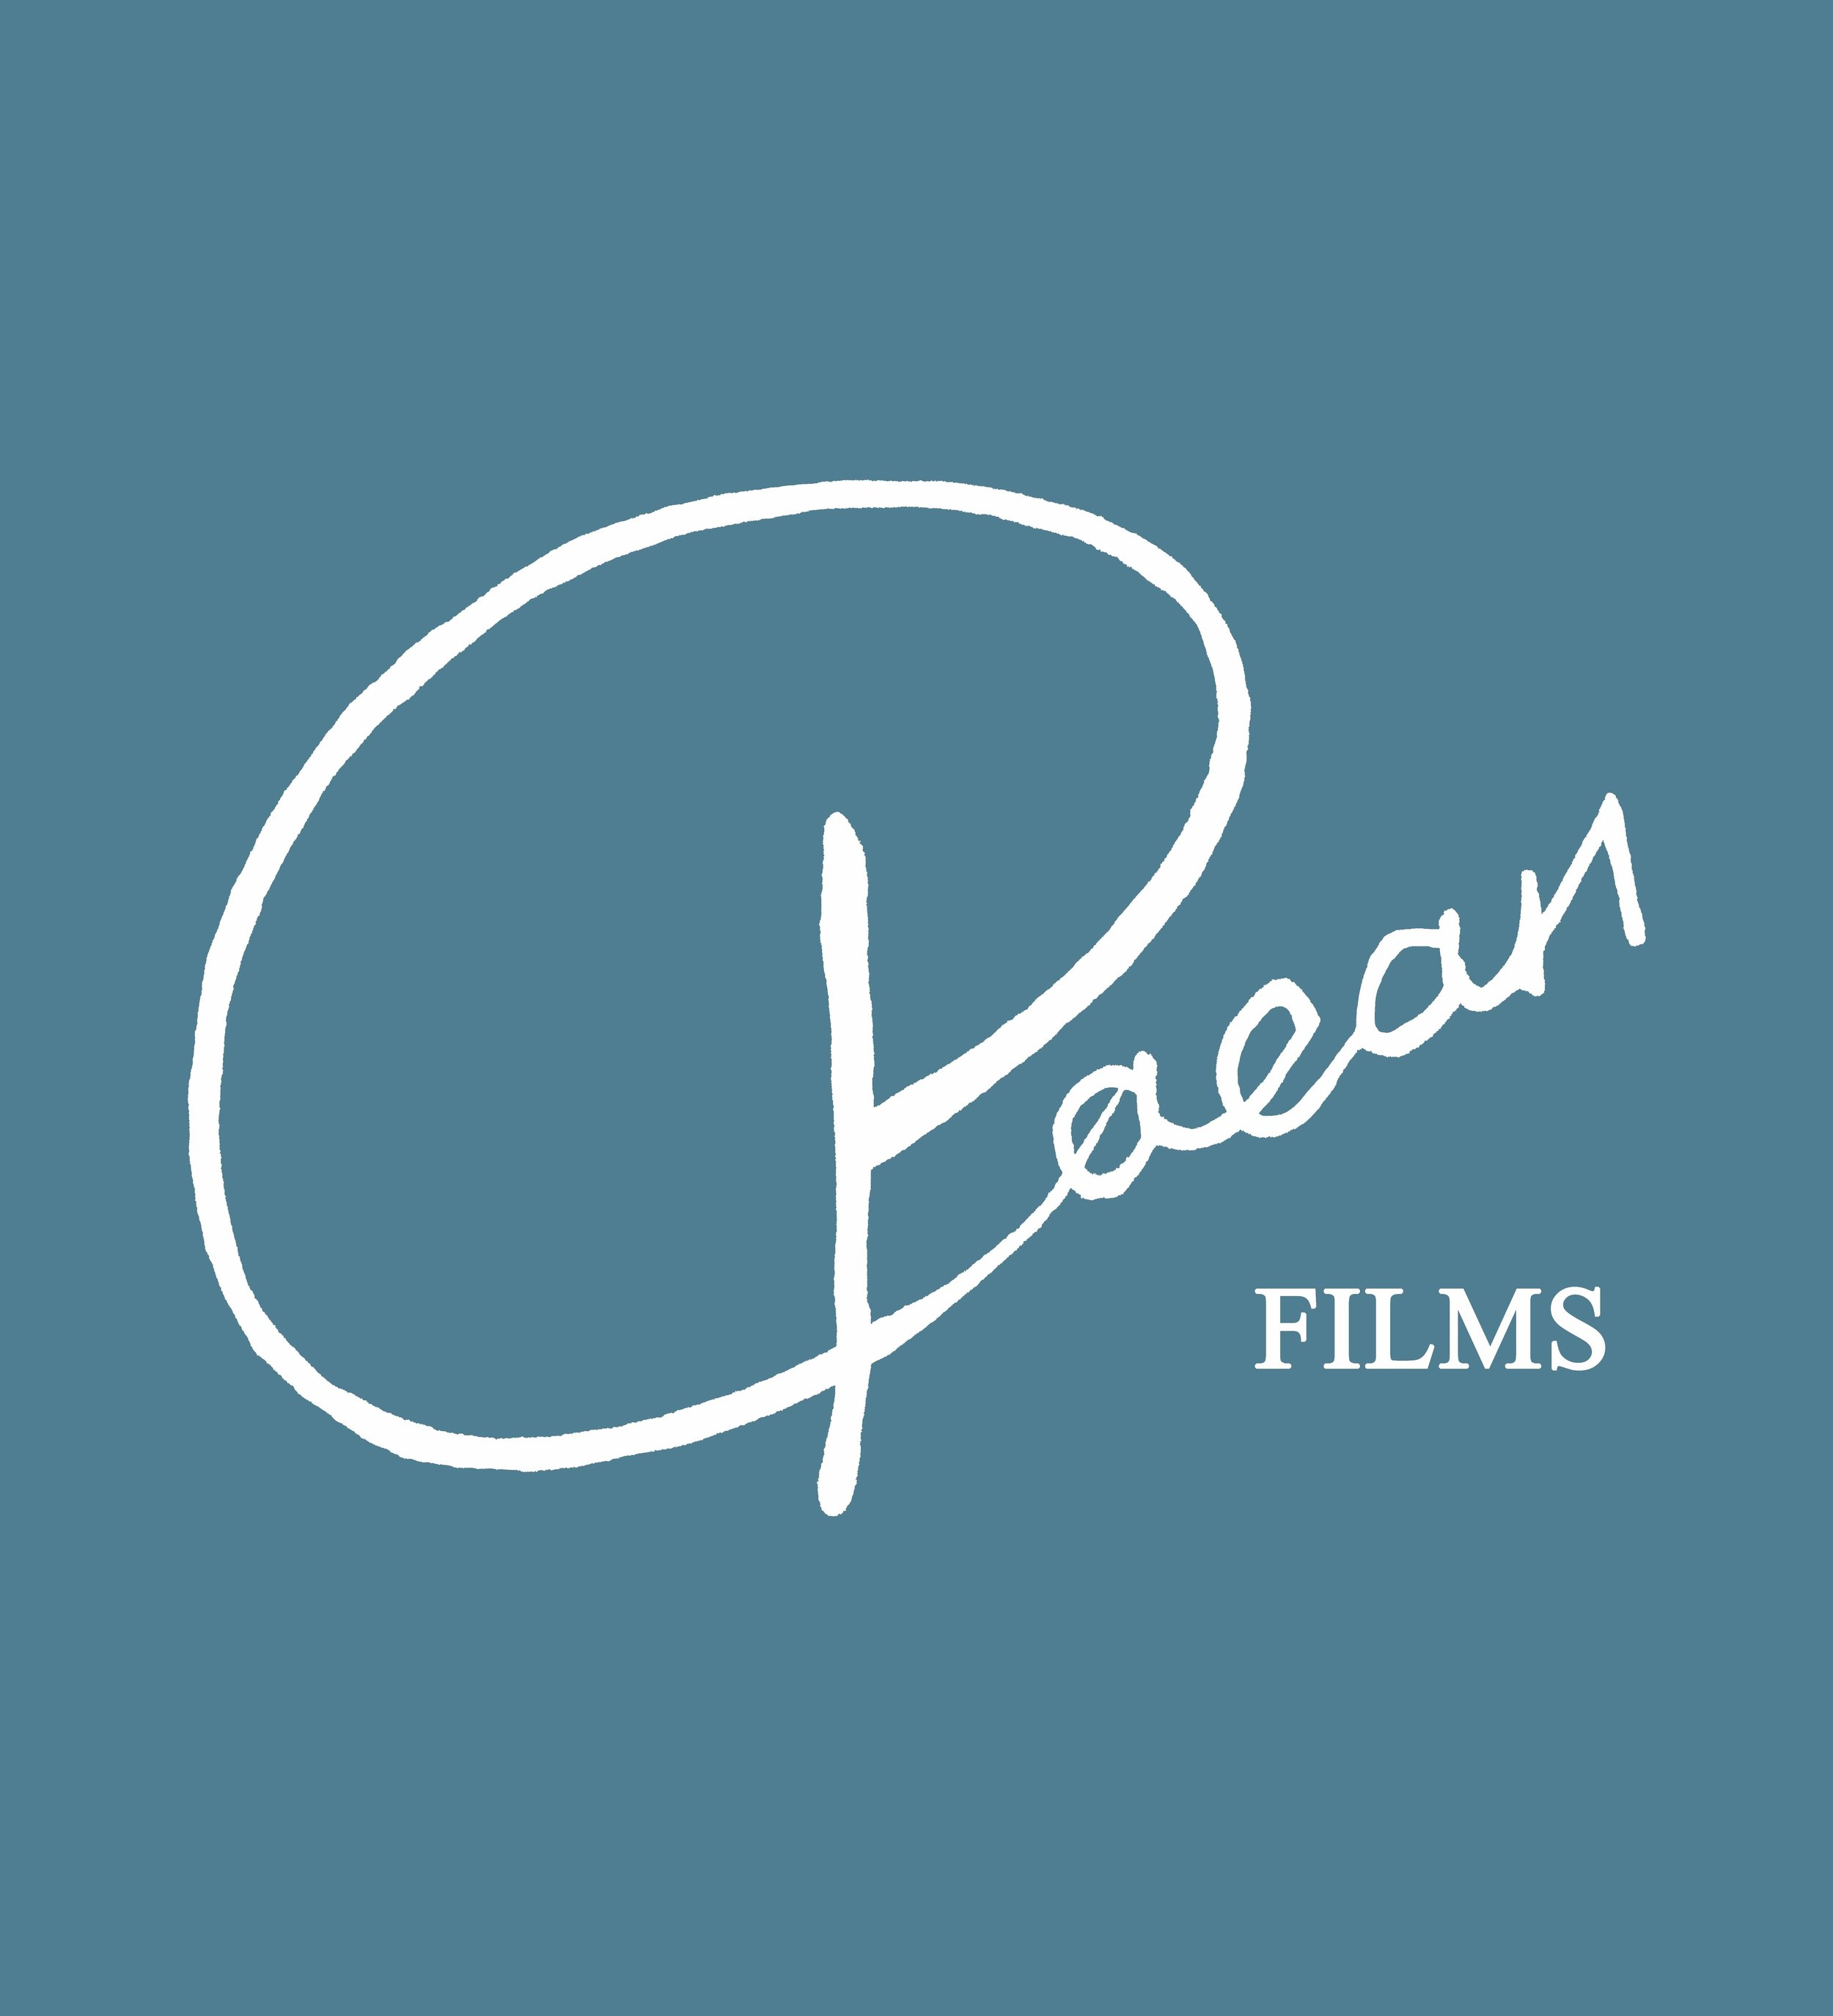 PAEAN_FILMS_LOGO_COLOUR_REVERSE_SMALL.jpg